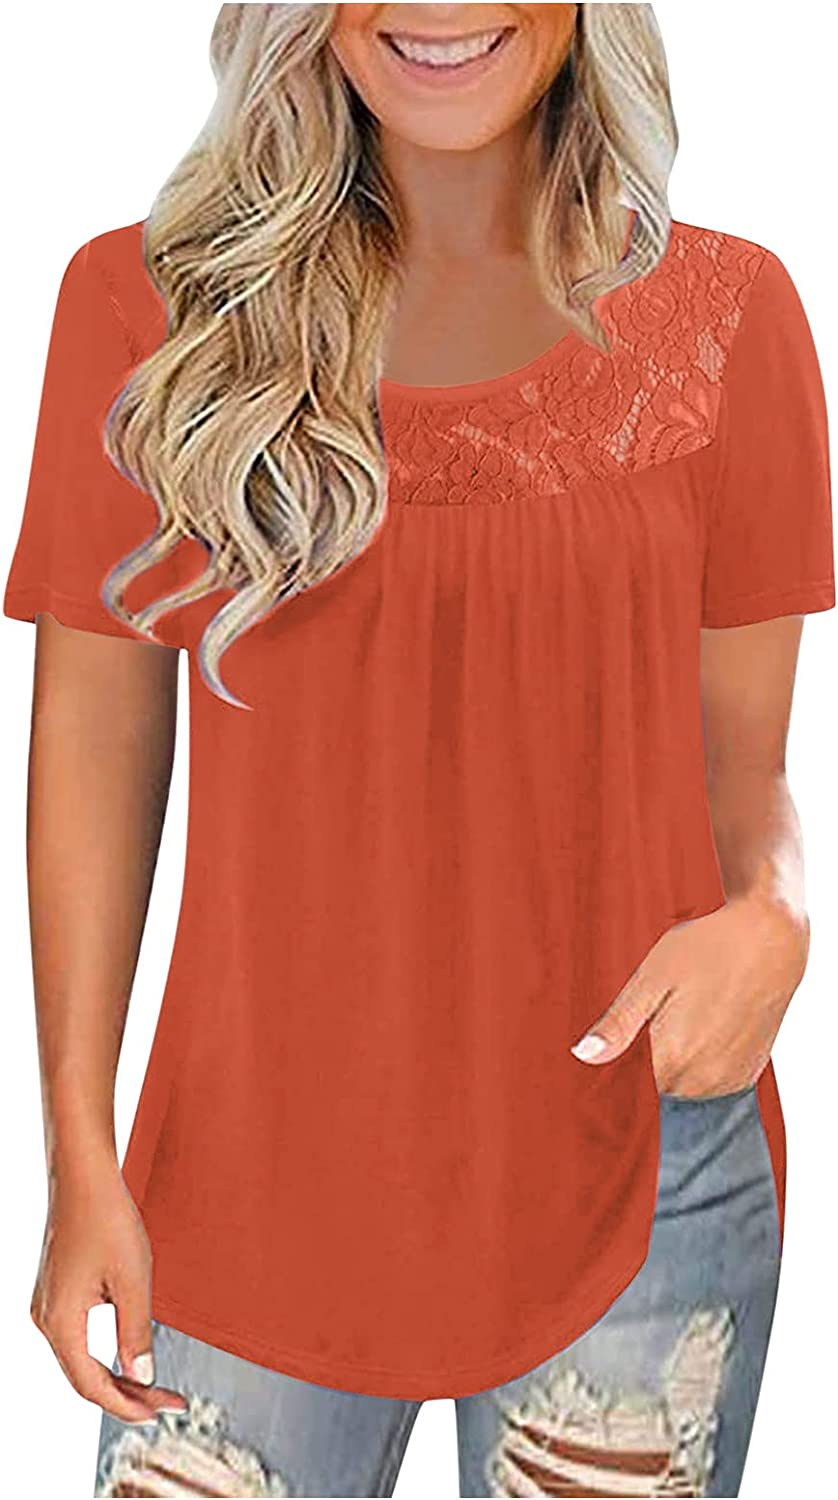 AODONG Short Sleeve Tops for Women, Women's Plus Size Summer Tops Lace Pleated Shirts Casual Loose Tees Blouses Tunics